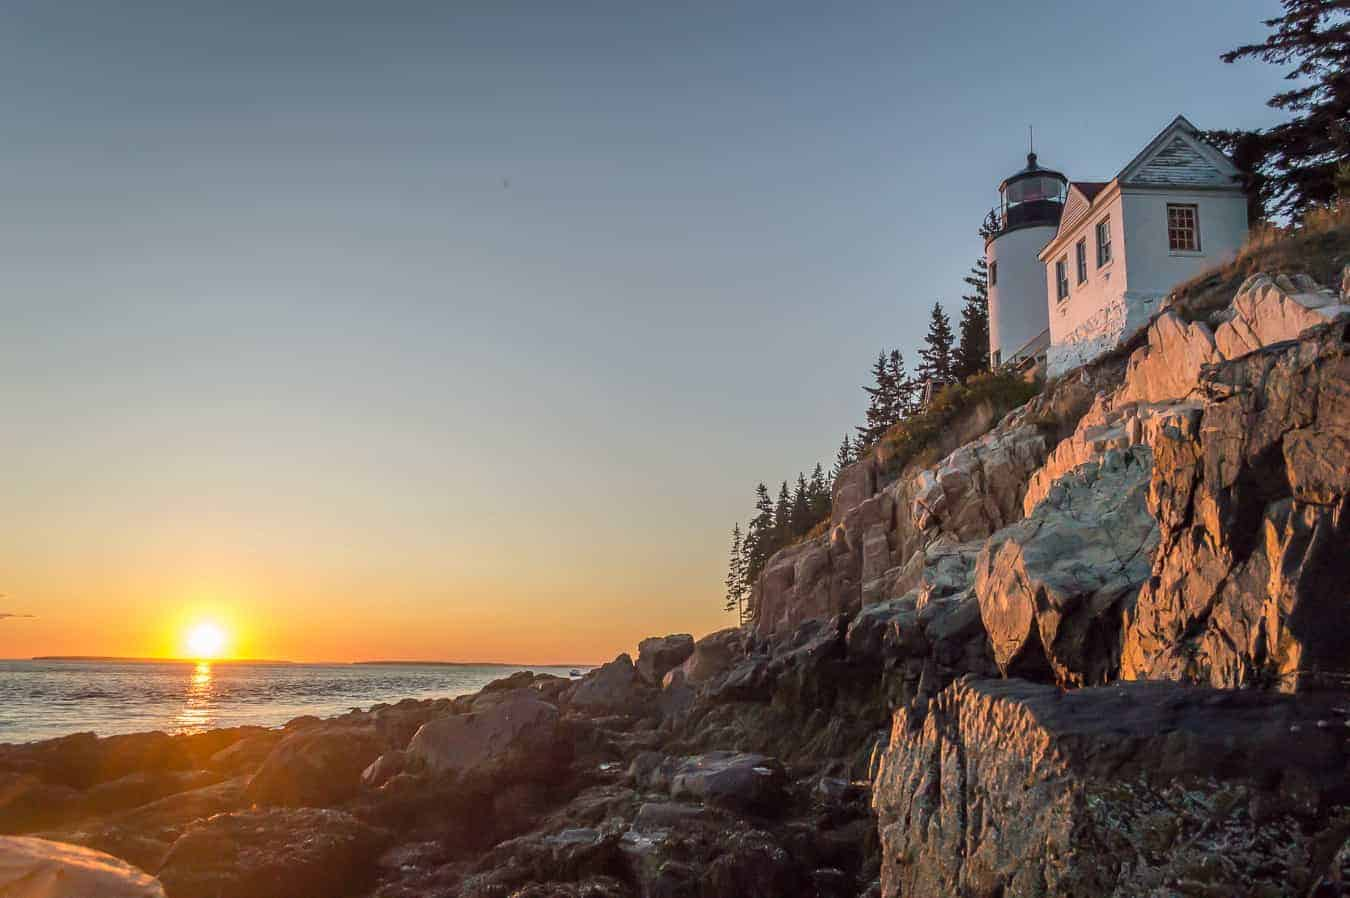 3 day itinerary acadia national park - image of small white lighthouse high on rocky hill, Maine coast, sunset over the ocean to the far left